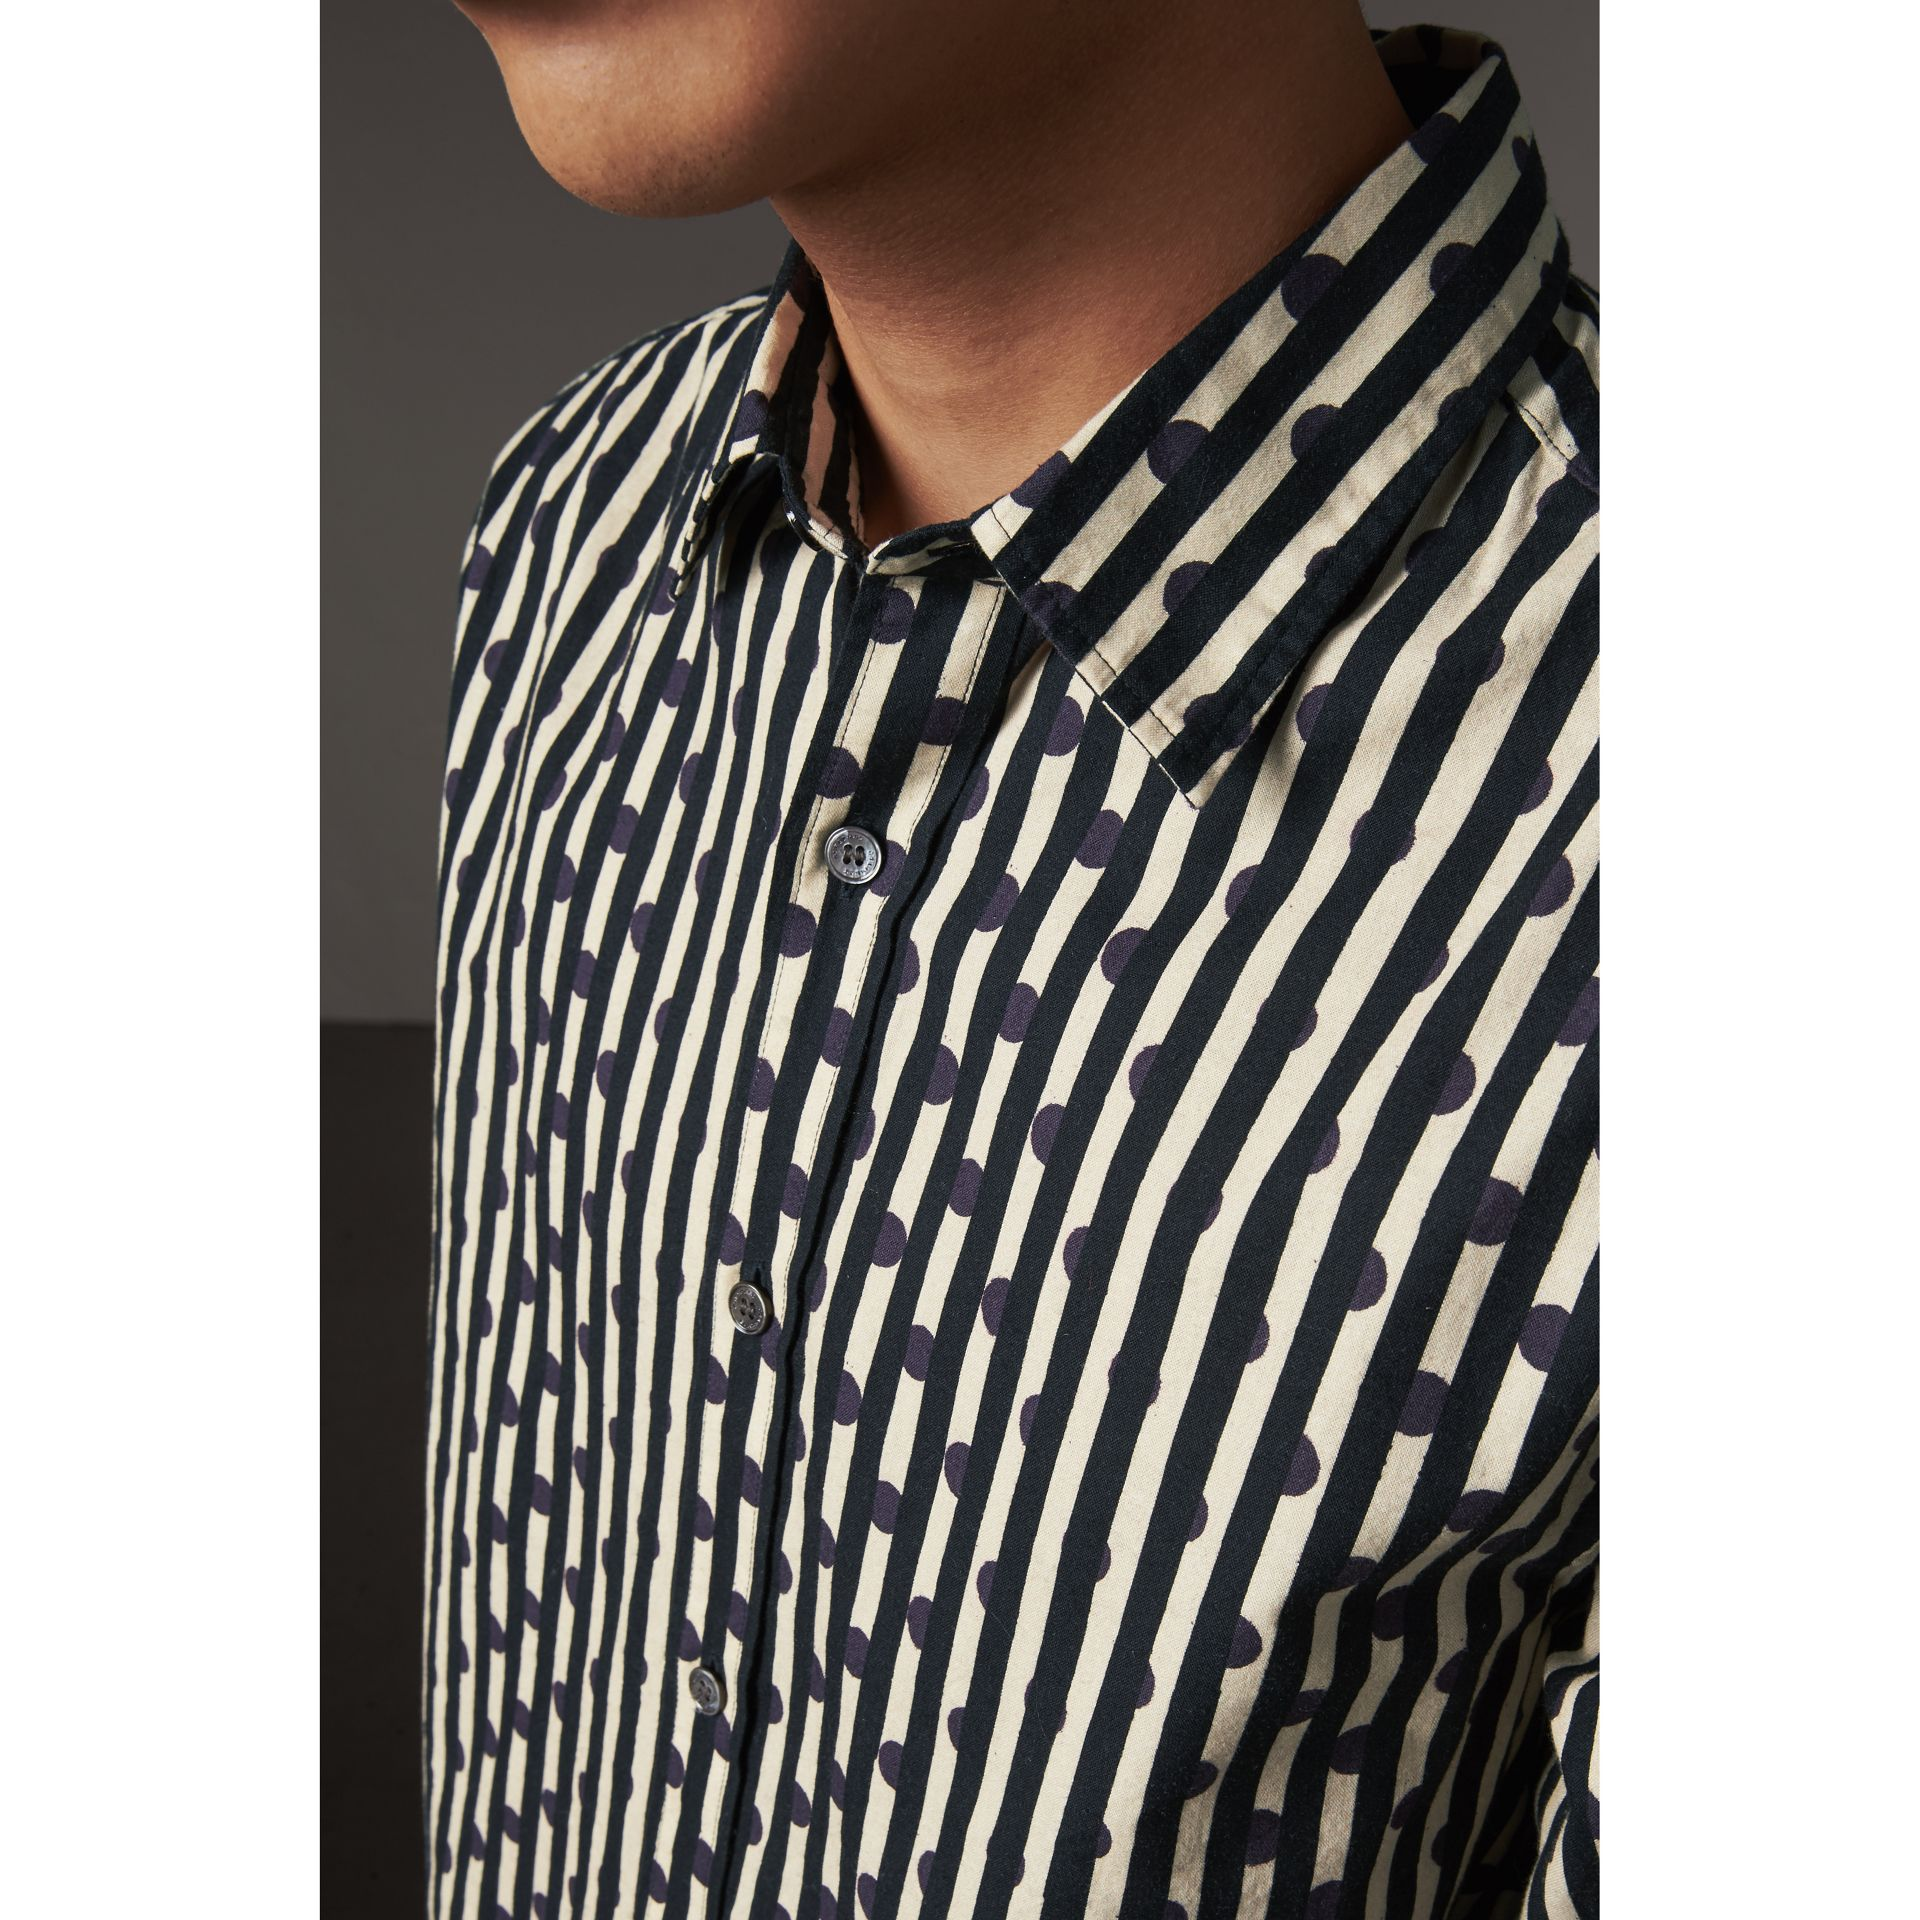 Spot and Stripe Print Cotton Shirt in Navy - Men | Burberry - gallery image 2